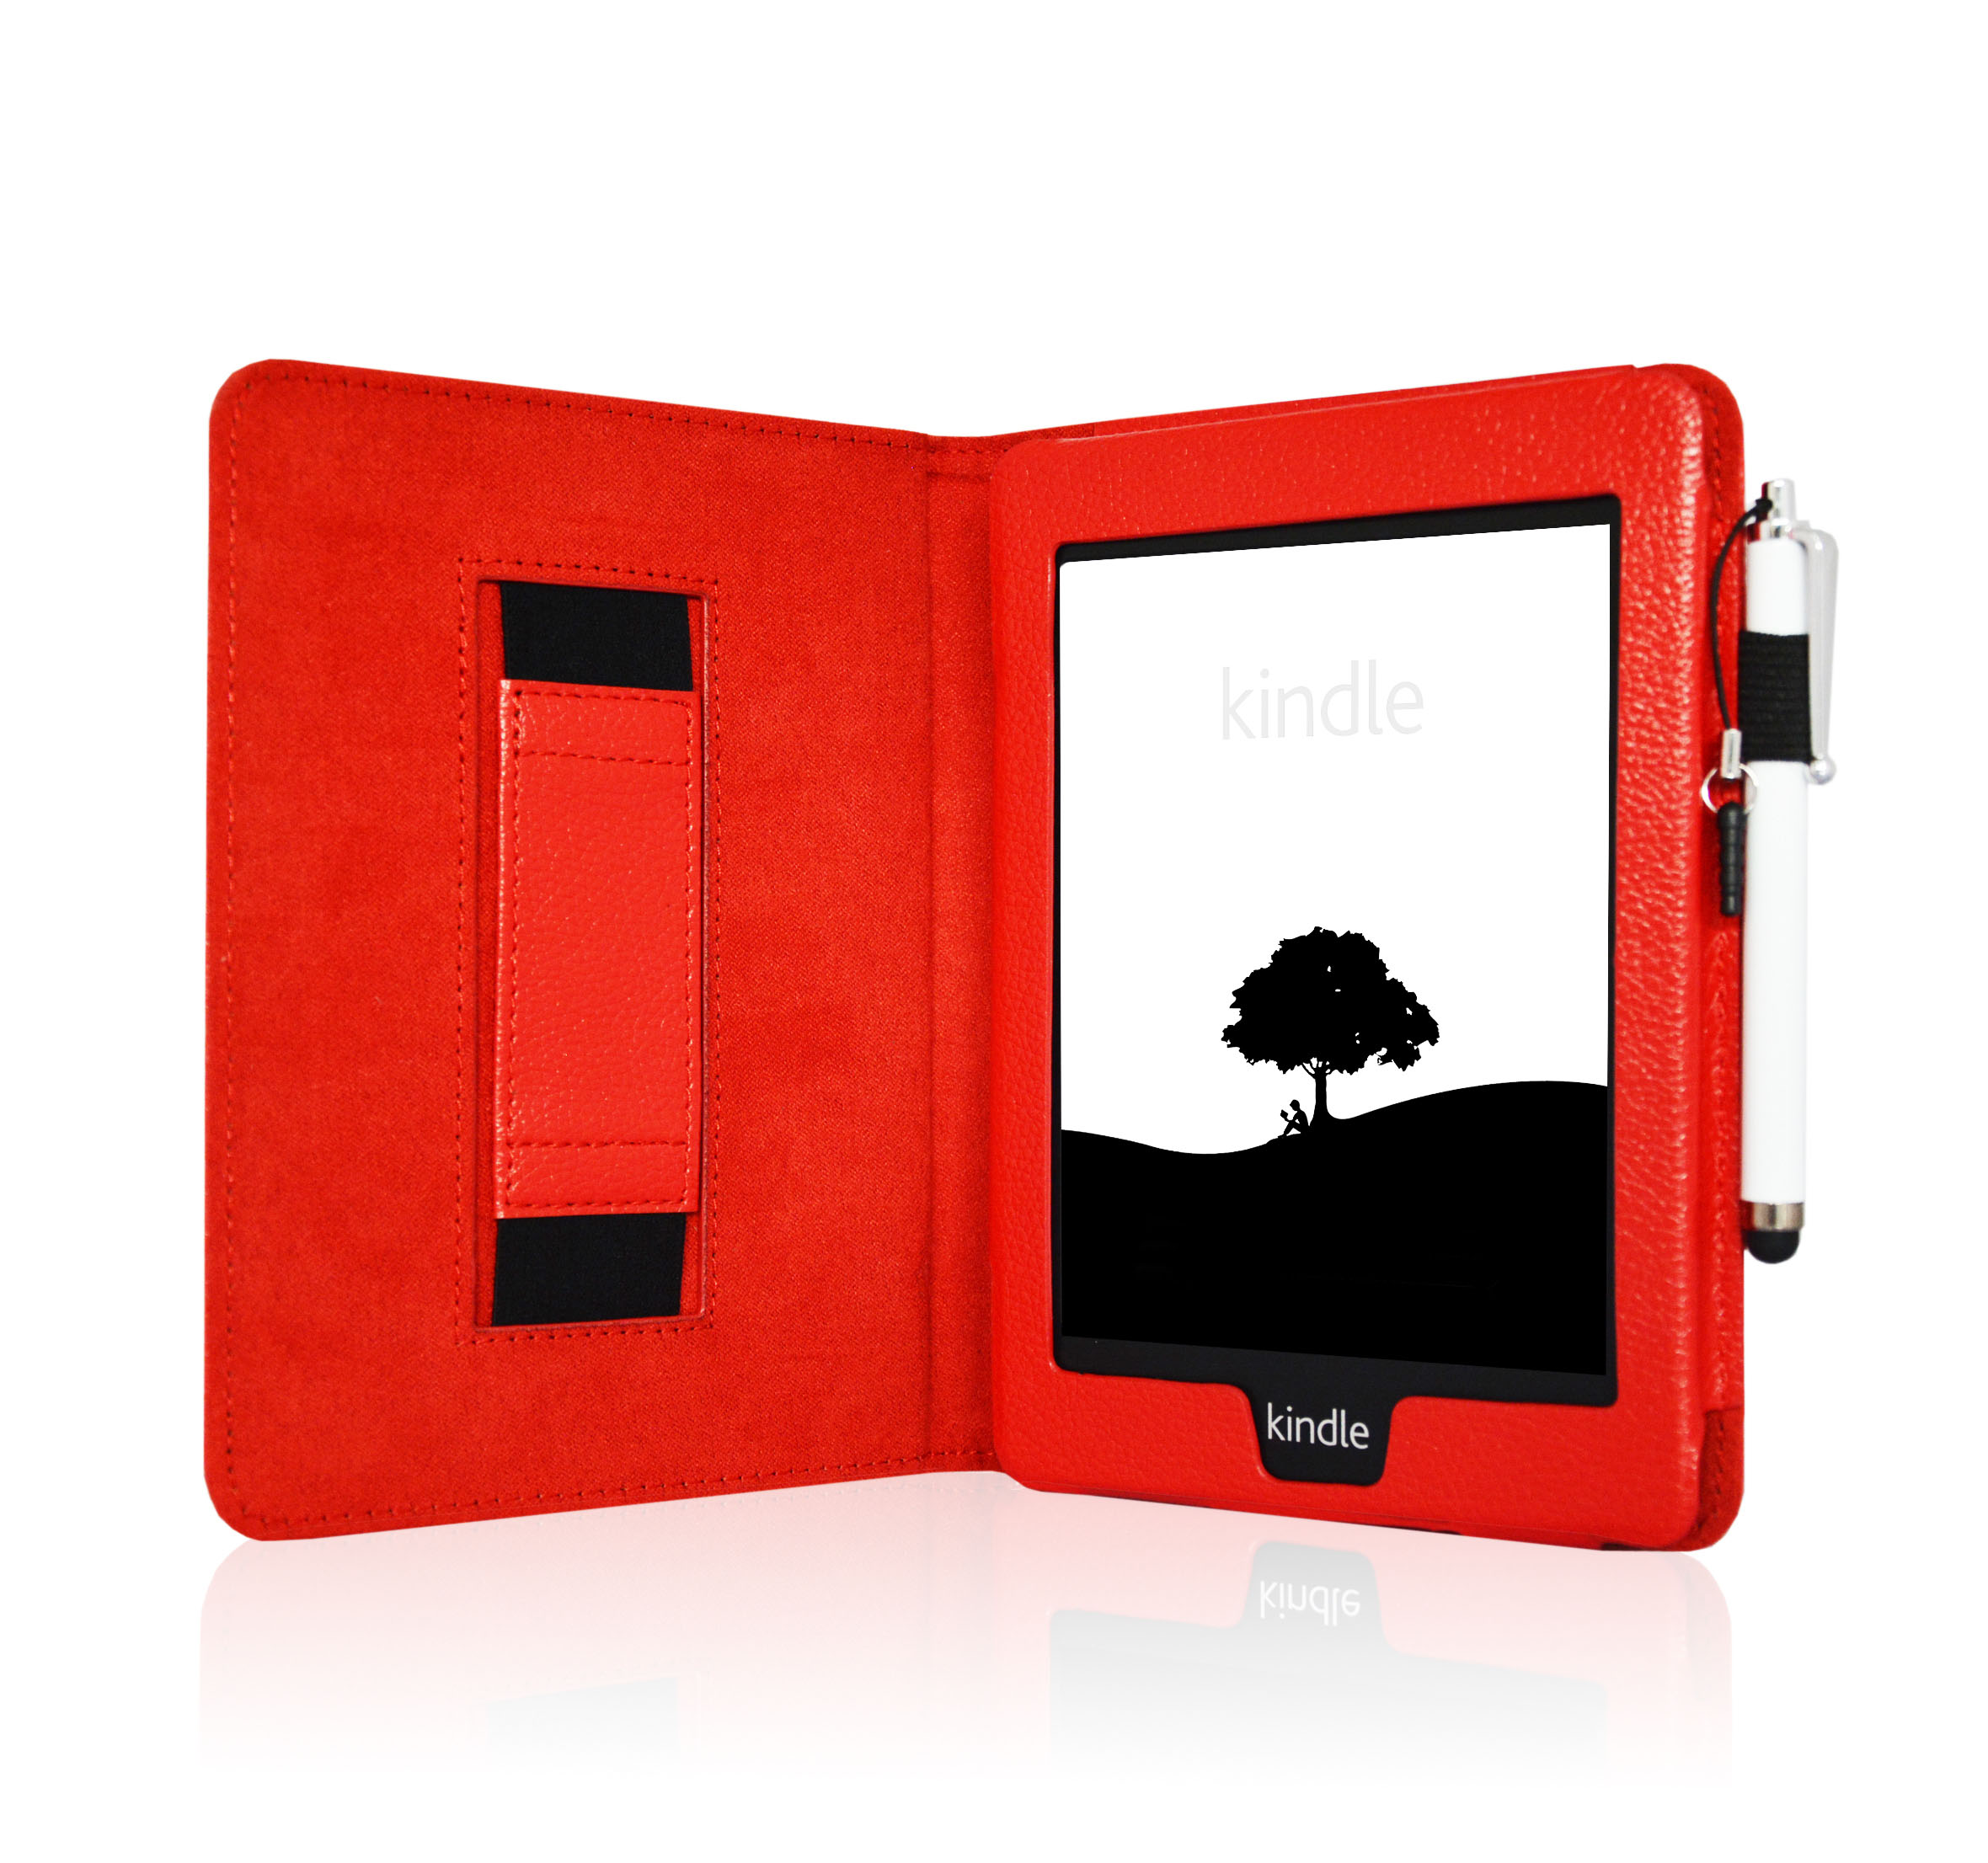 amazon's kindle case write up 5 days ago  here's your guide for creating and publishing amazon kindle books with  with  your kdp account setup, proceed to setting up the details of your book  make  sure to do your research regarding what type of book cover does.